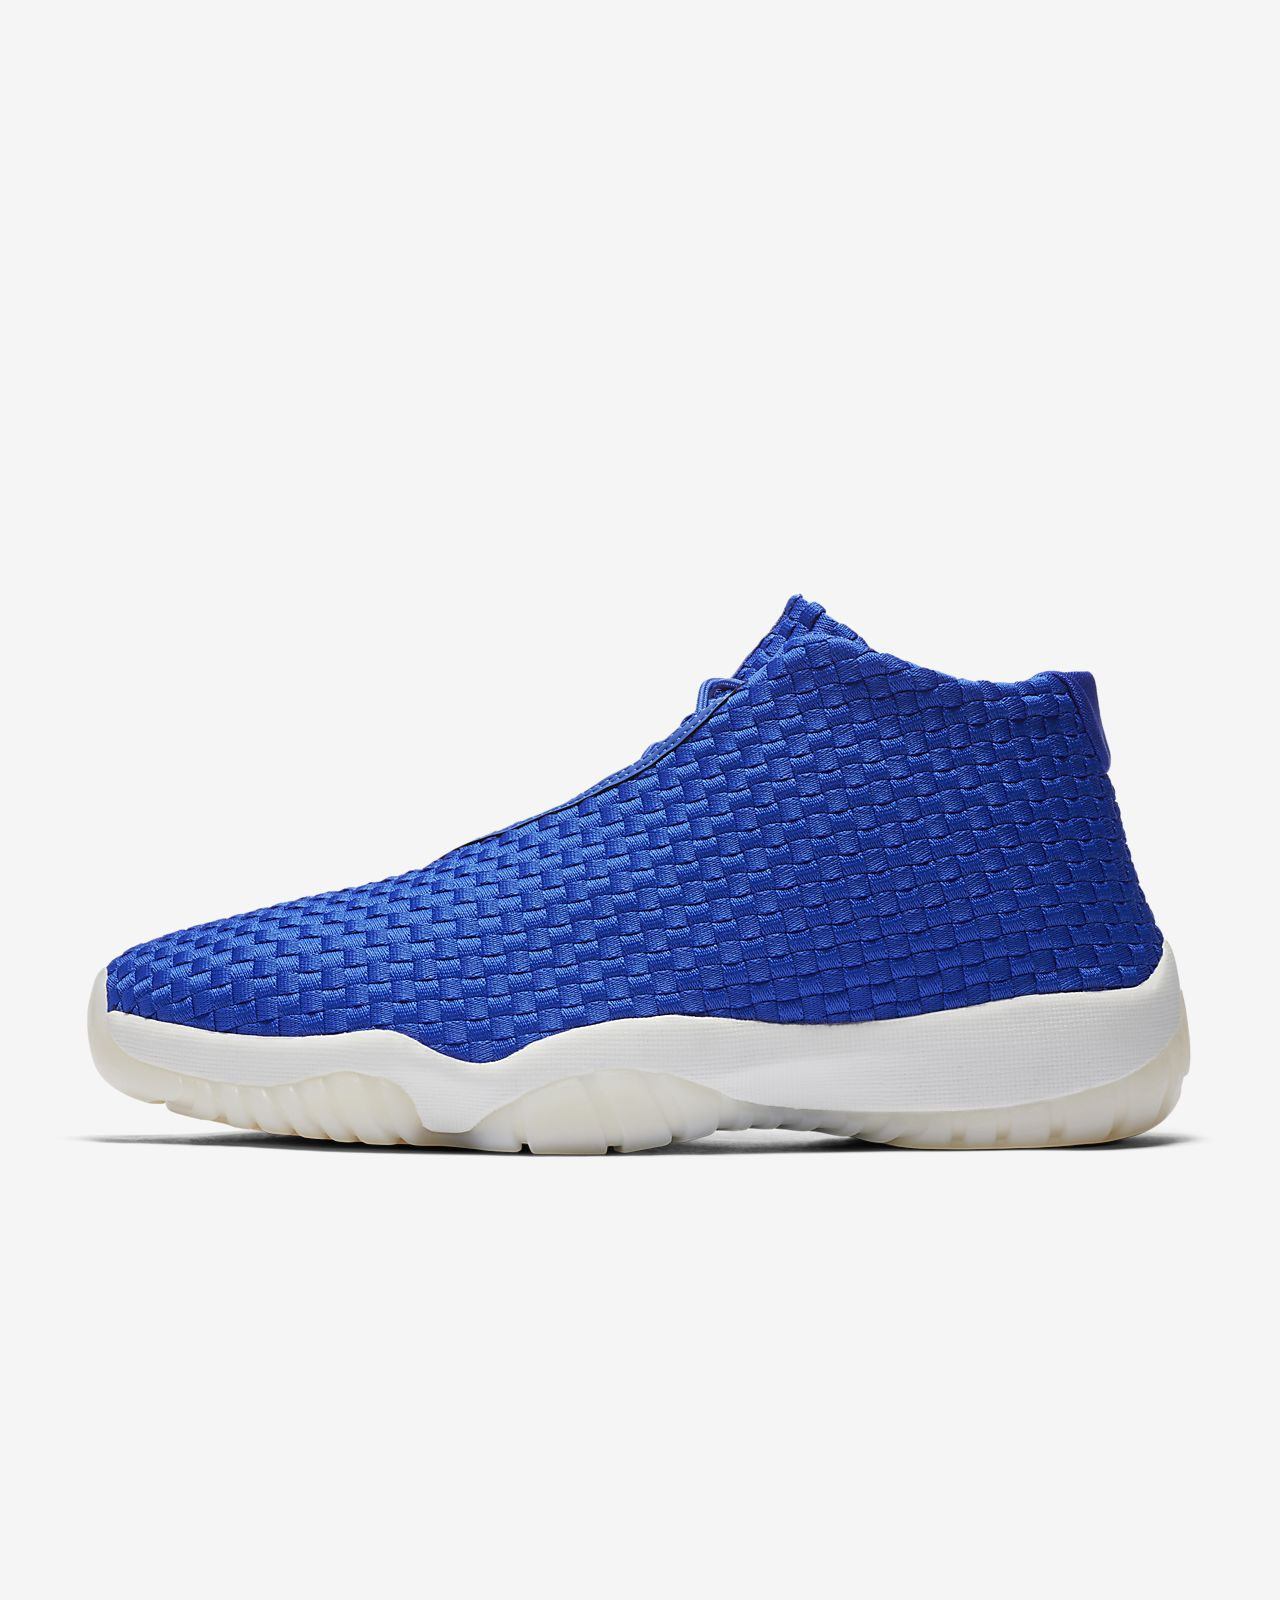 Air Jordan Future Men's Shoe